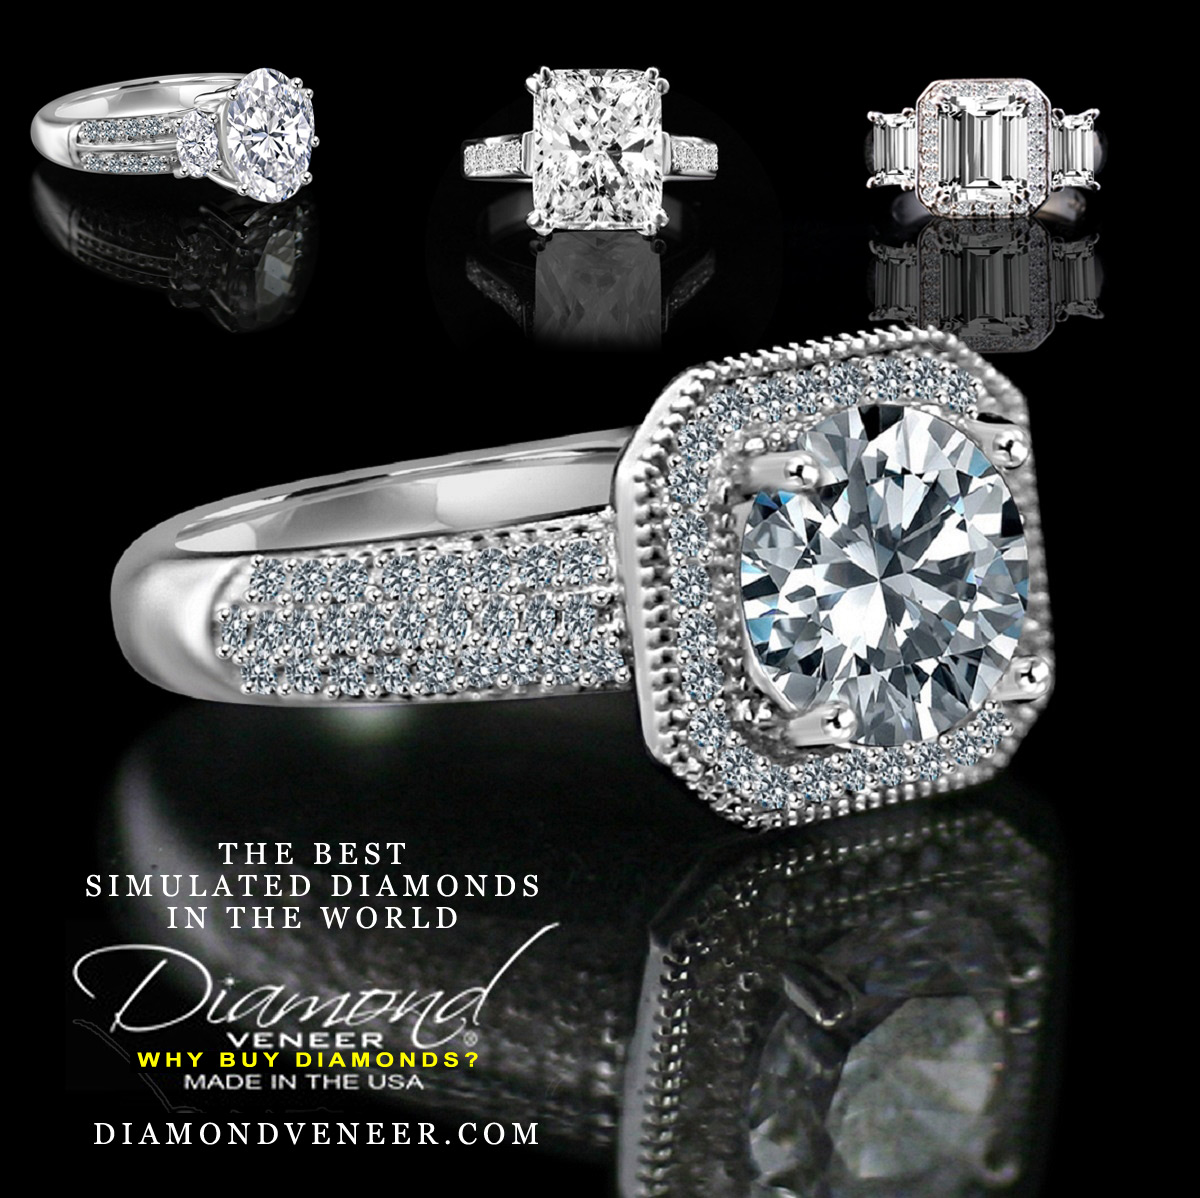 Cubic Zirconia: The Affordable Simulated Diamonds For Beautiful Jewelry